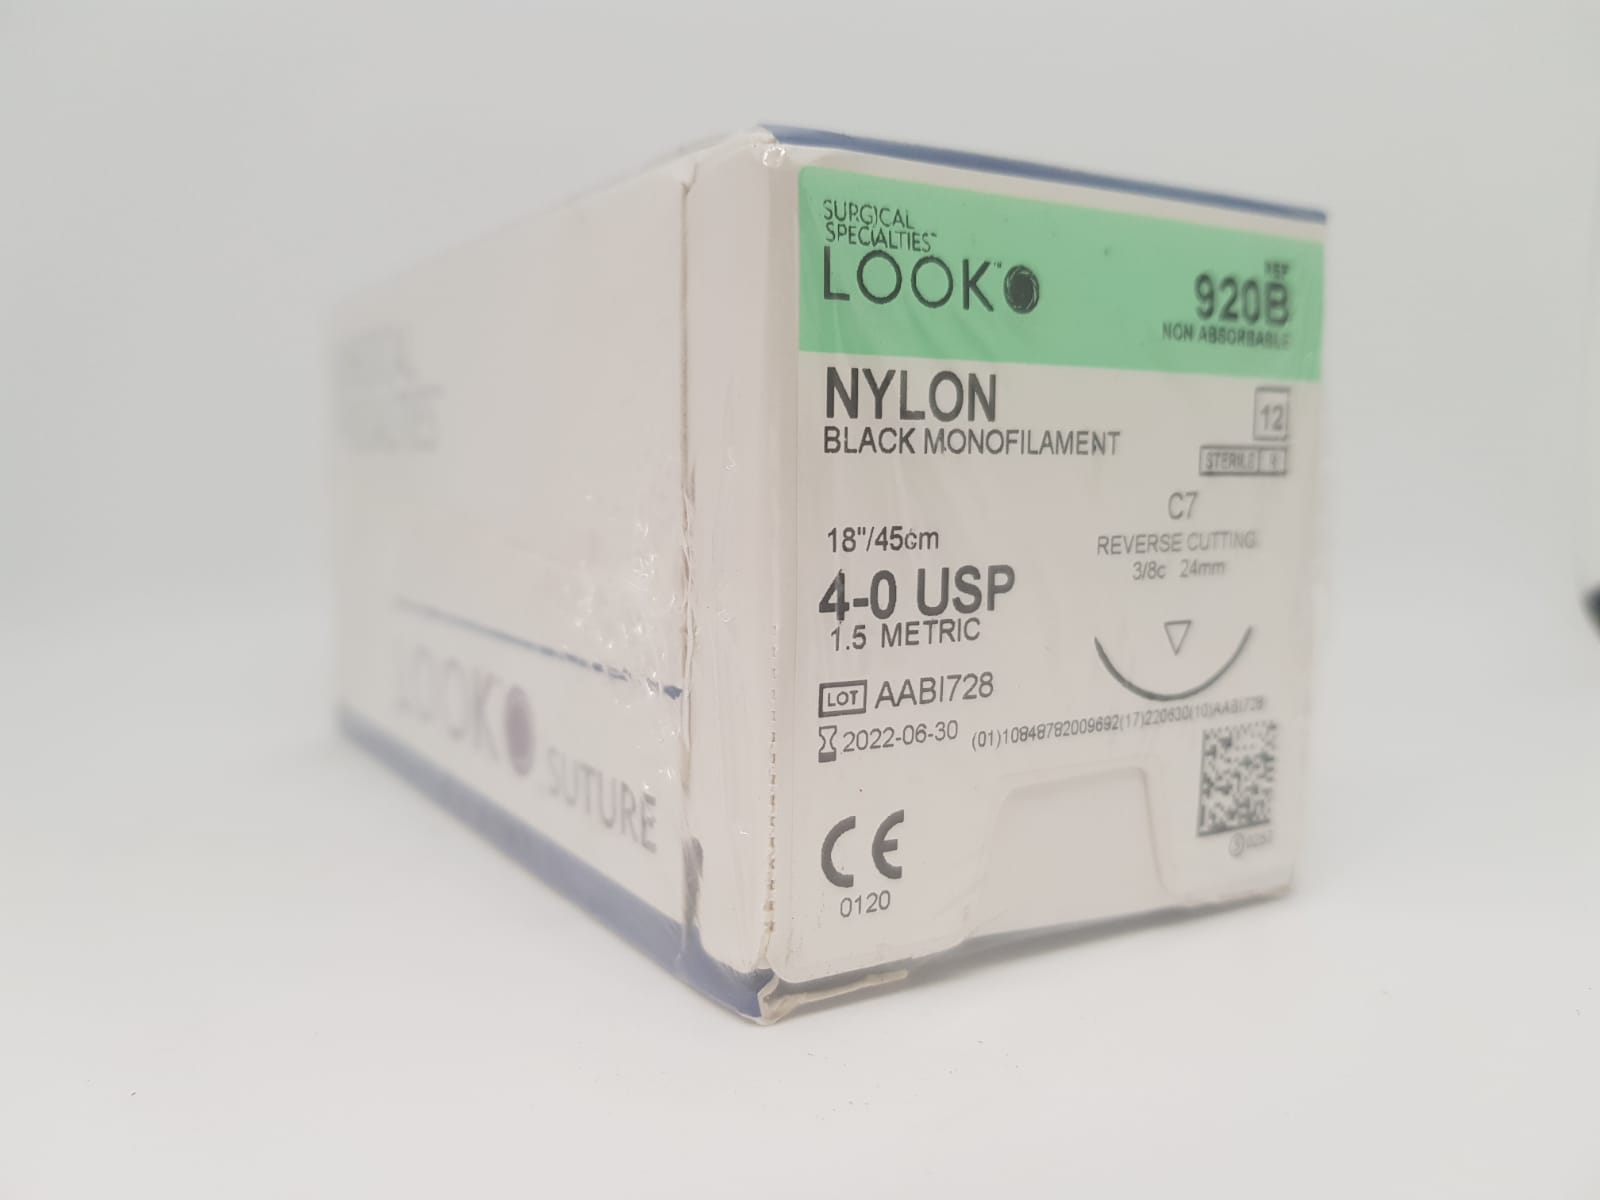 SS LOOK NYLON SUTURE 4/0 24MM 45CM, BOX 12